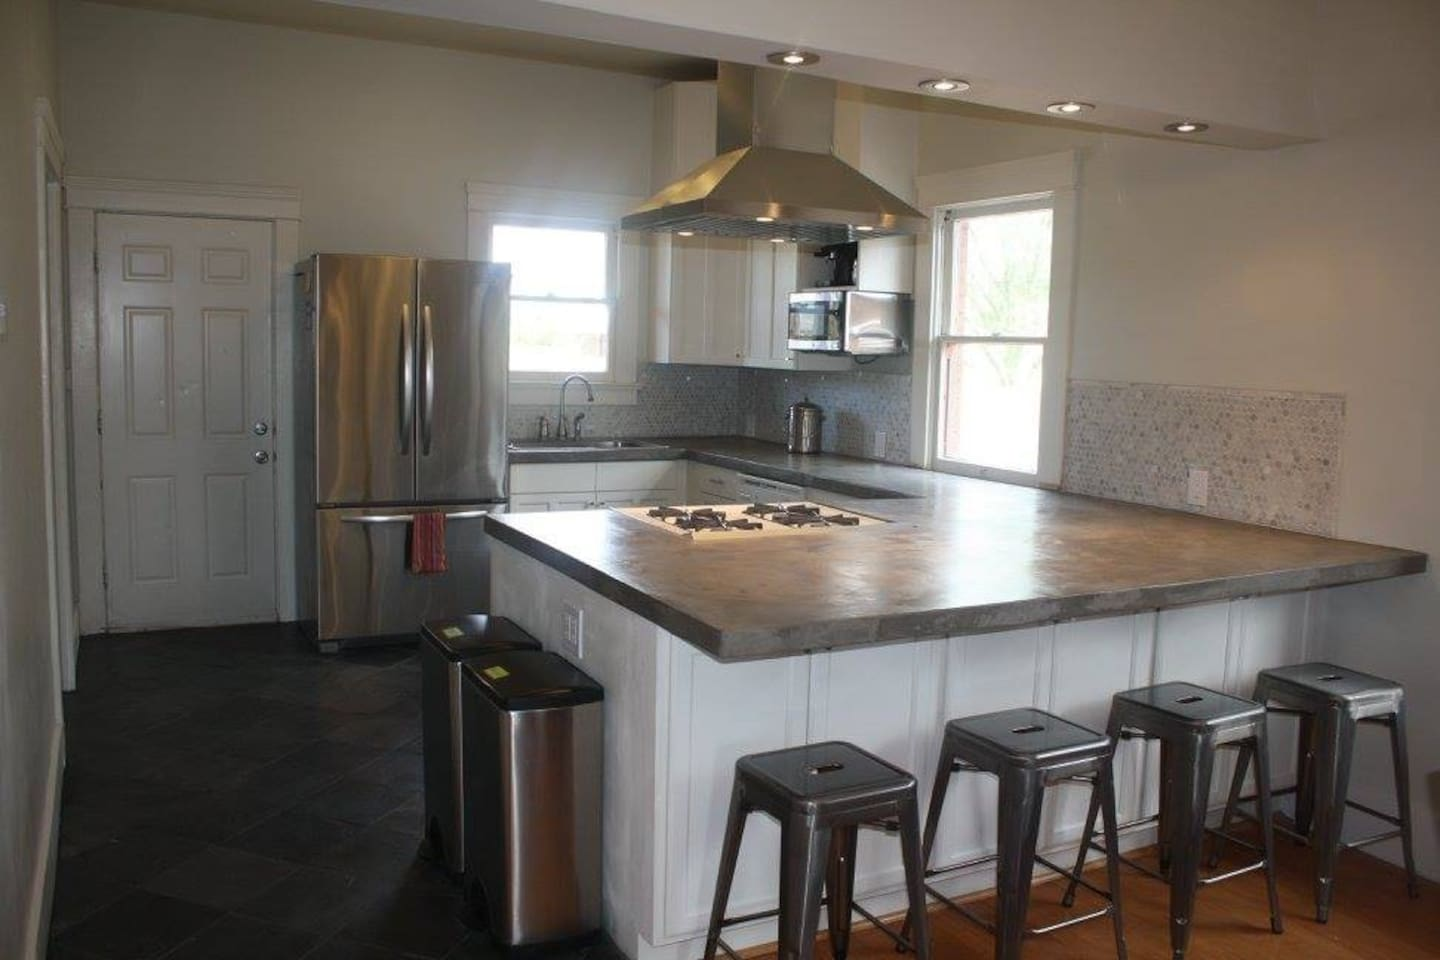 The kitchen opens up to the dining / living rooms.